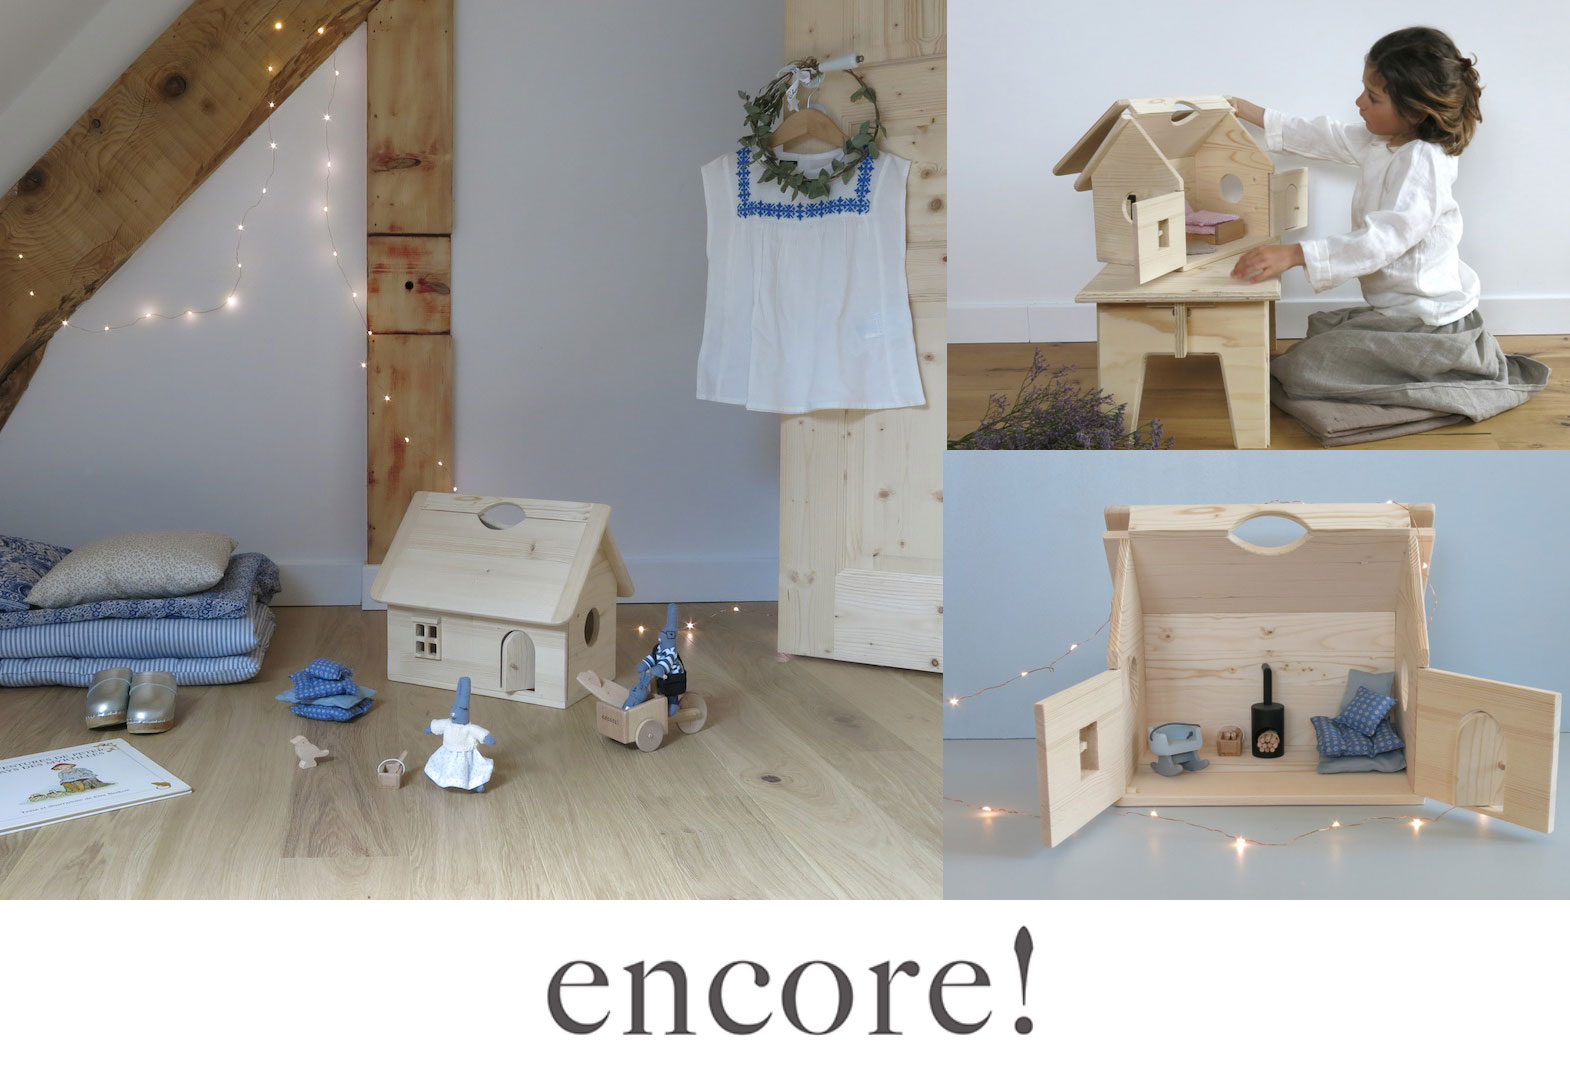 The Cottage in the woods - Jouets Encore